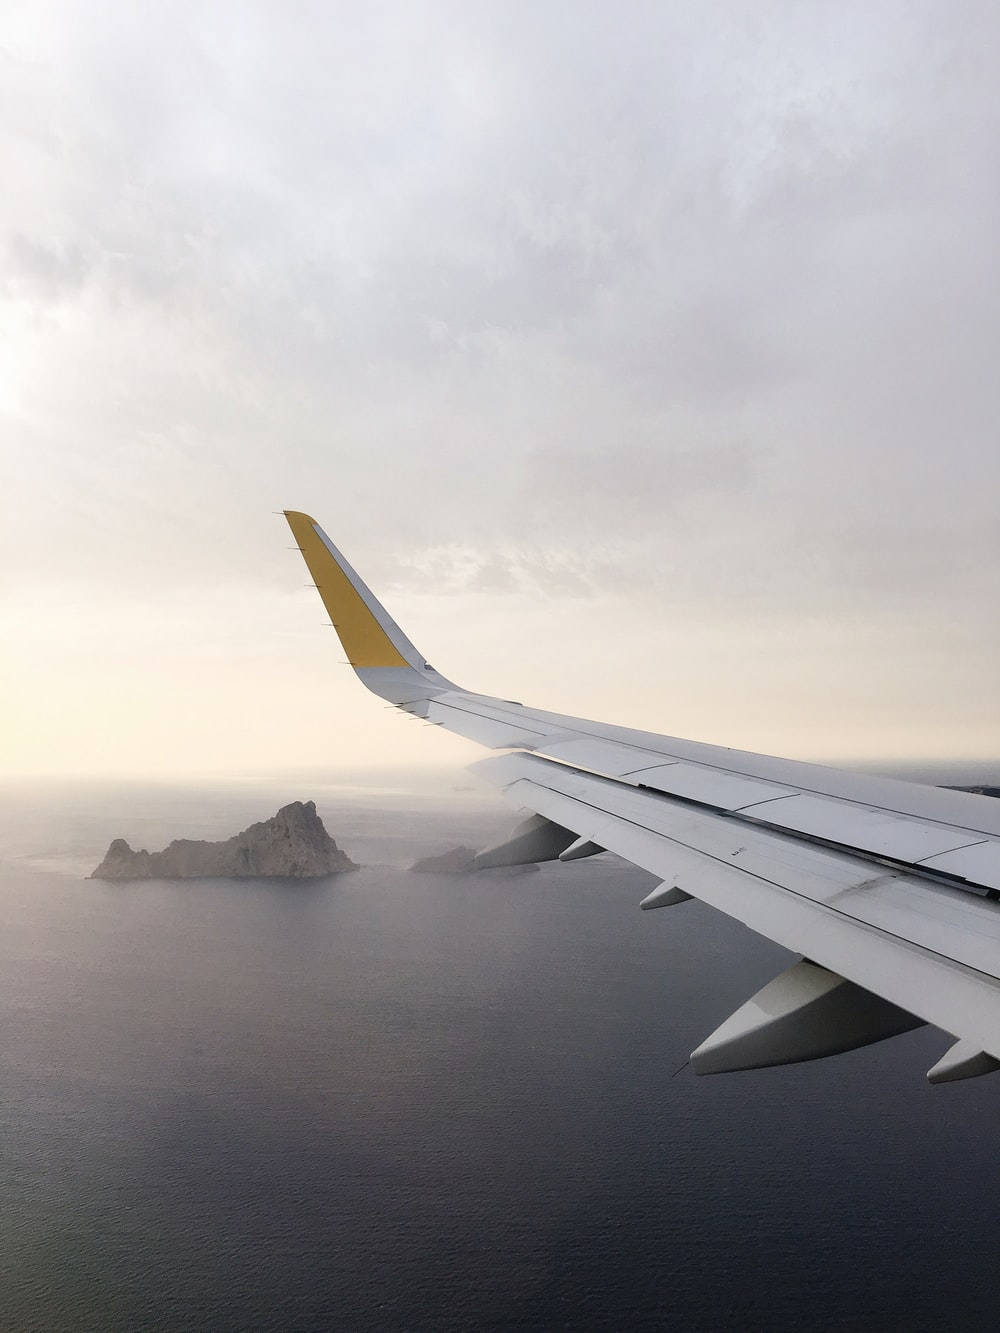 airplane wing above body of water during daytime